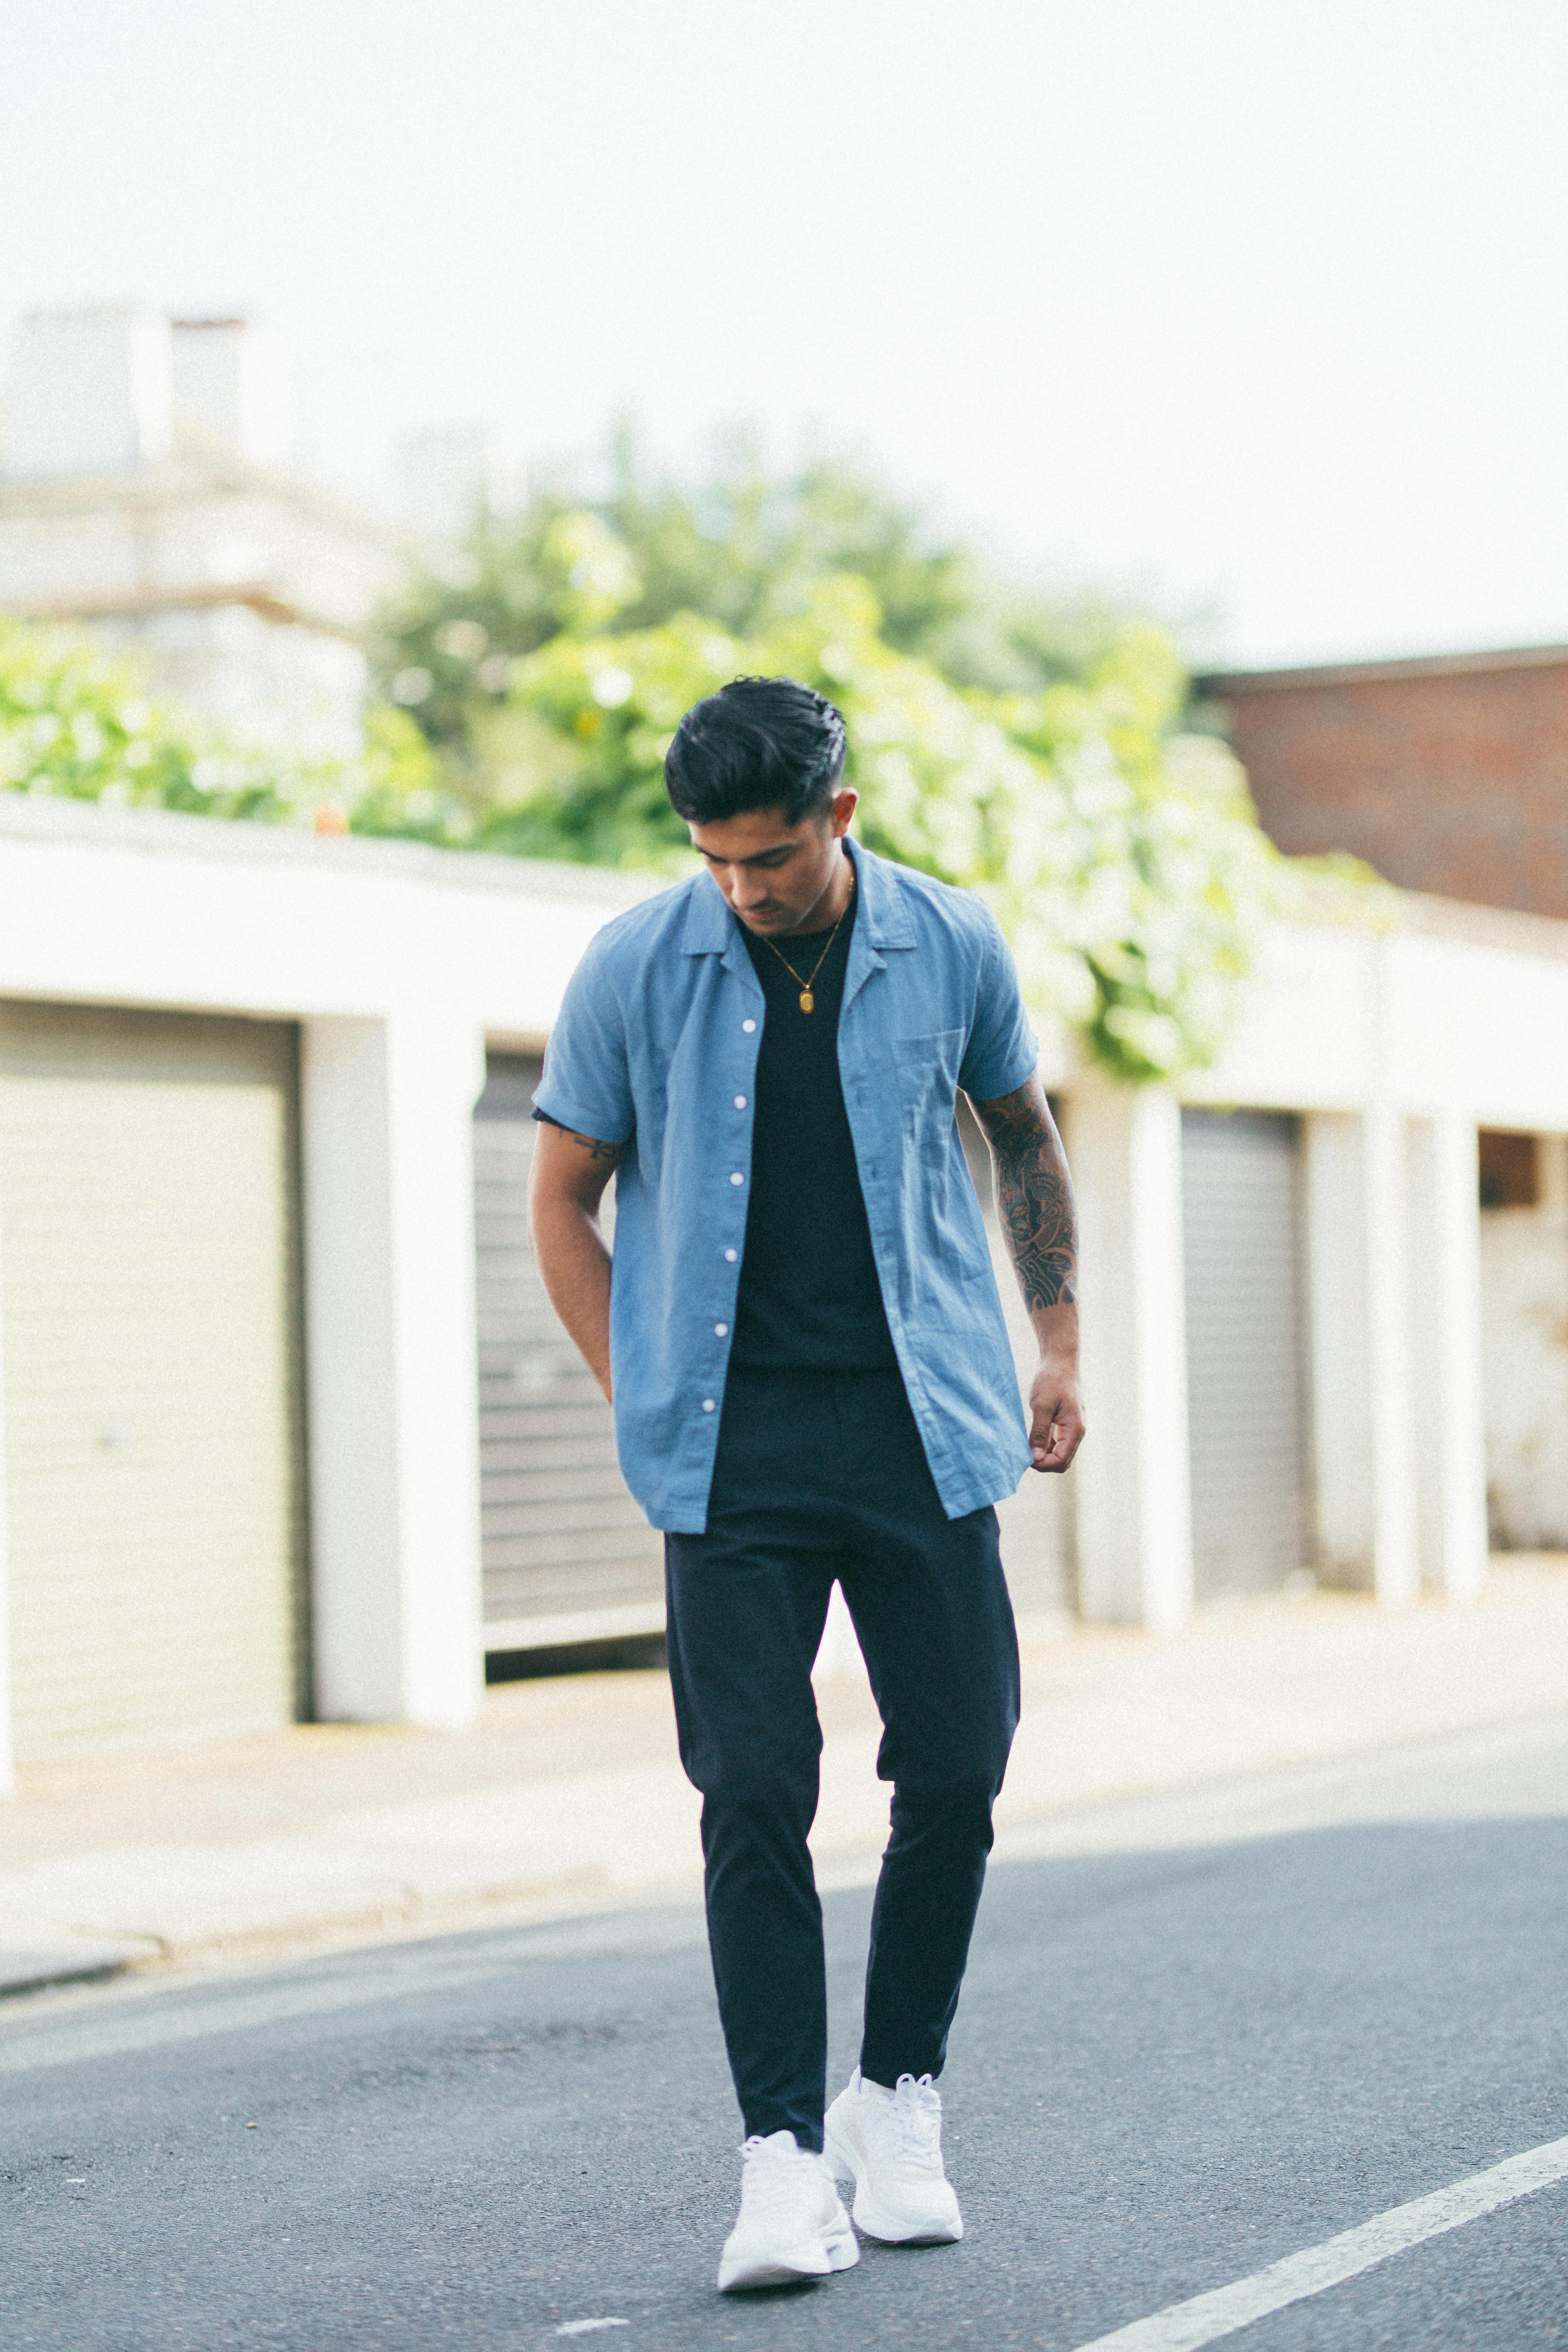 summer date outfits for men, date outfit ideas for guys